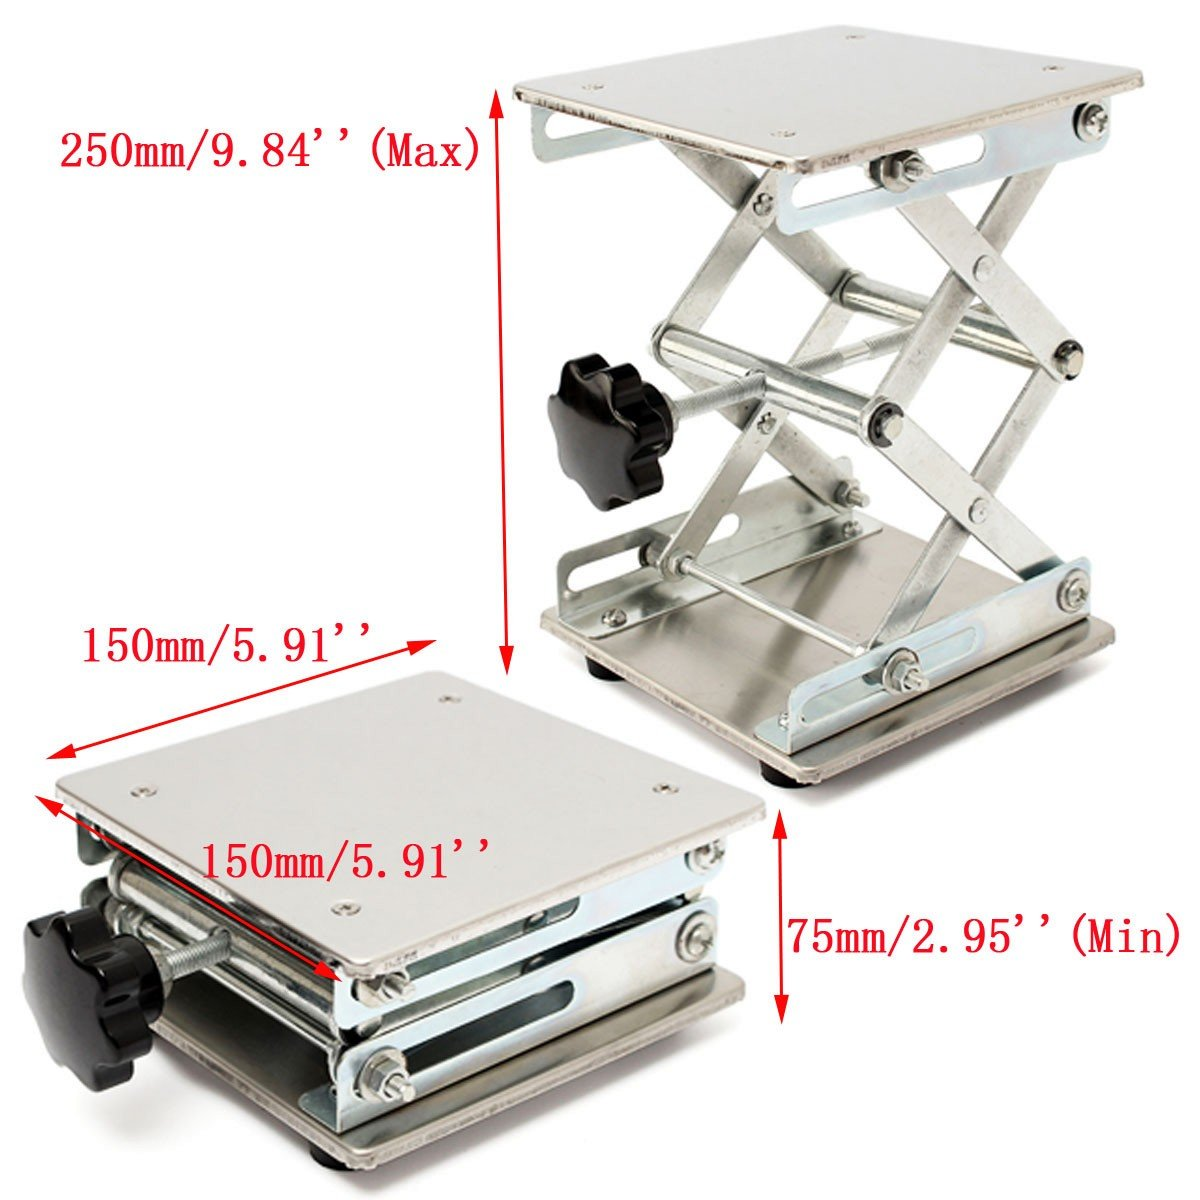 Letbobg New Lab Stand Table Scissor Lift laboratory 150150mm by Letbobg (Image #6)